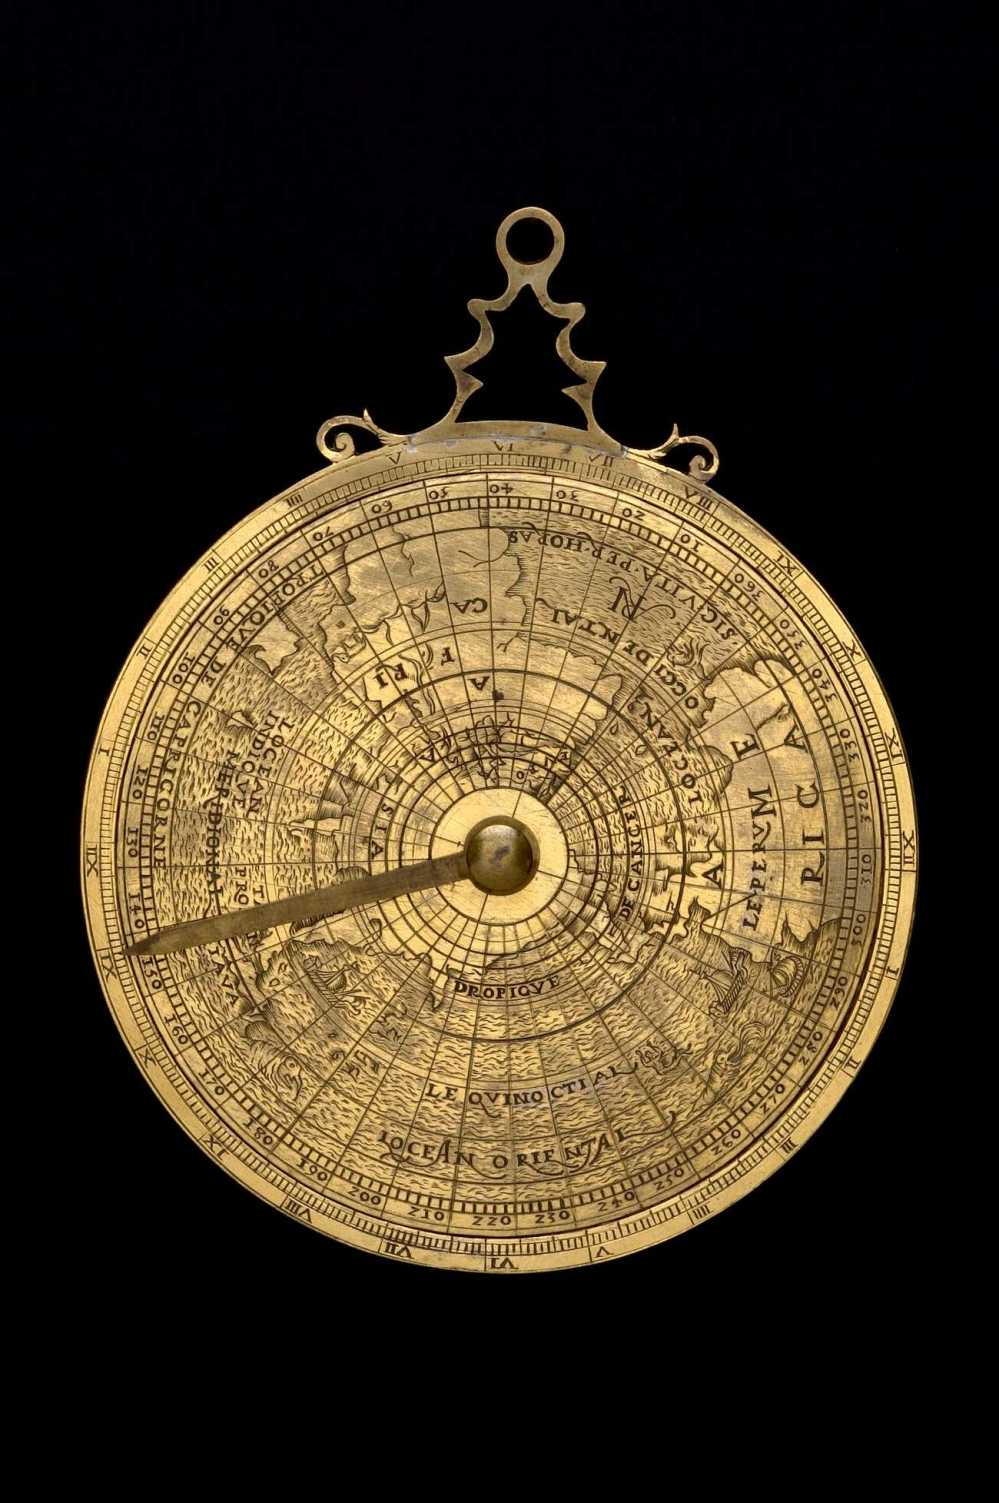 preview image for Geographical Astrolabe, by or for ARN?, French, Late 16th Century?